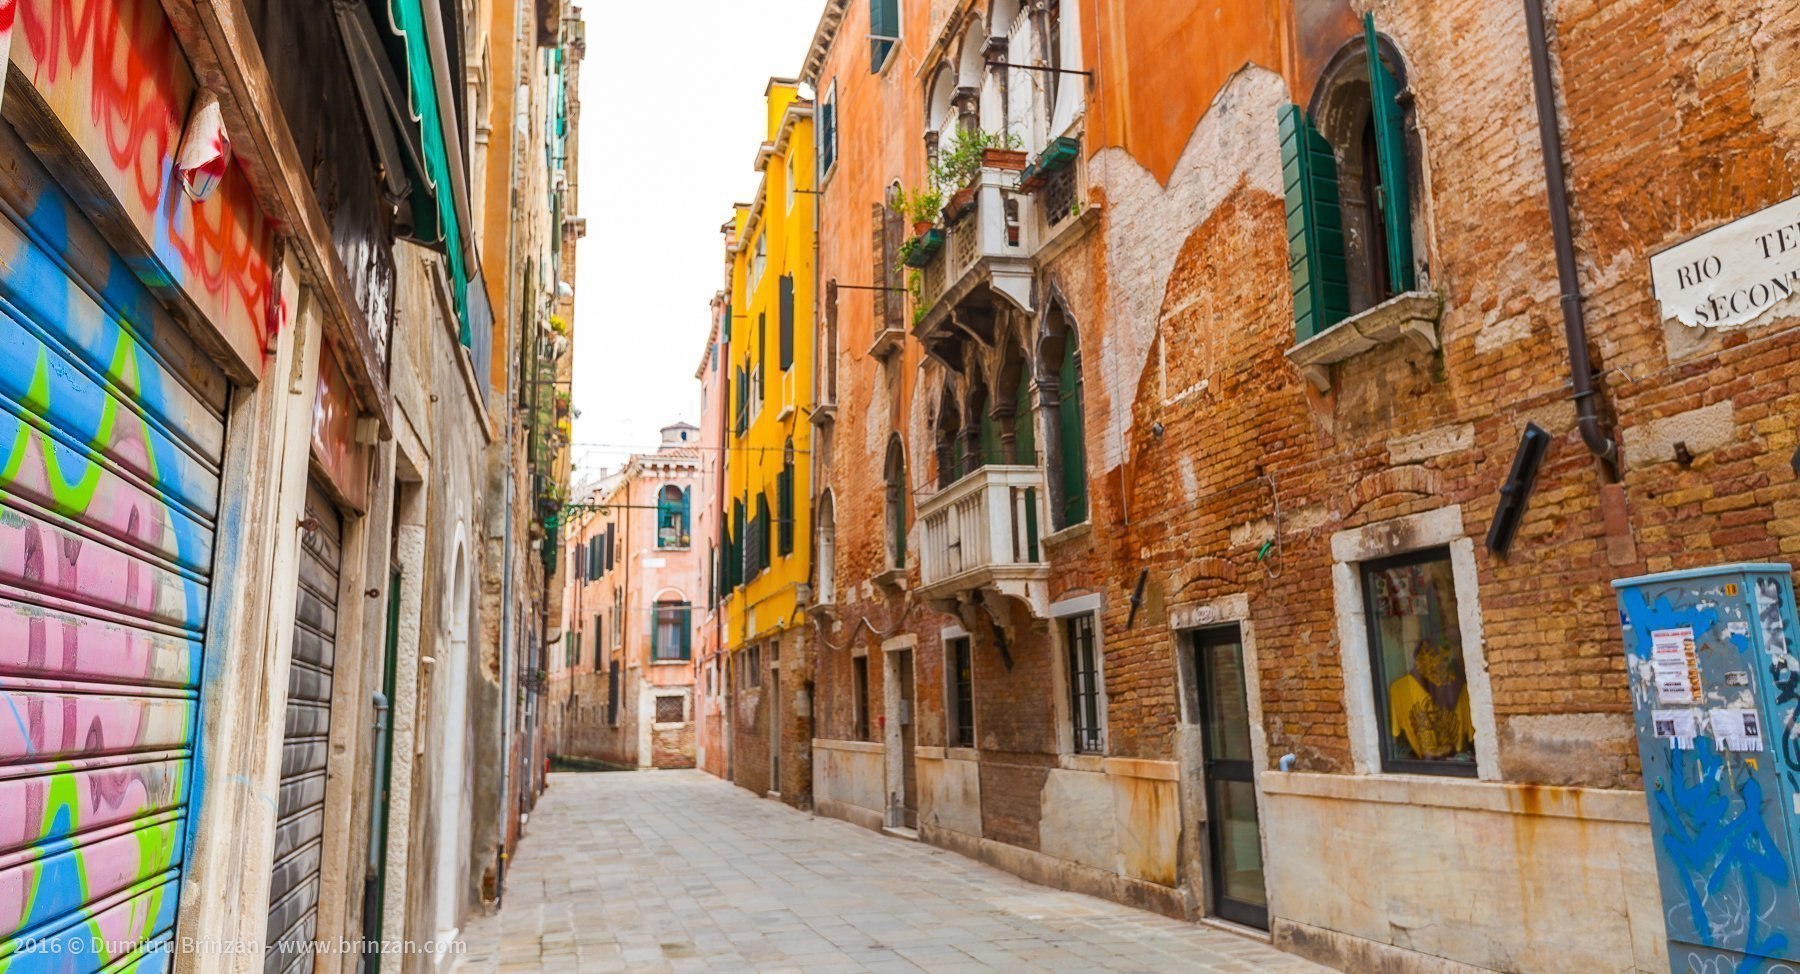 Just like other major Italian cities, Venice has a big problem with bad graffiti. Graffiti makes people feel unsafe.